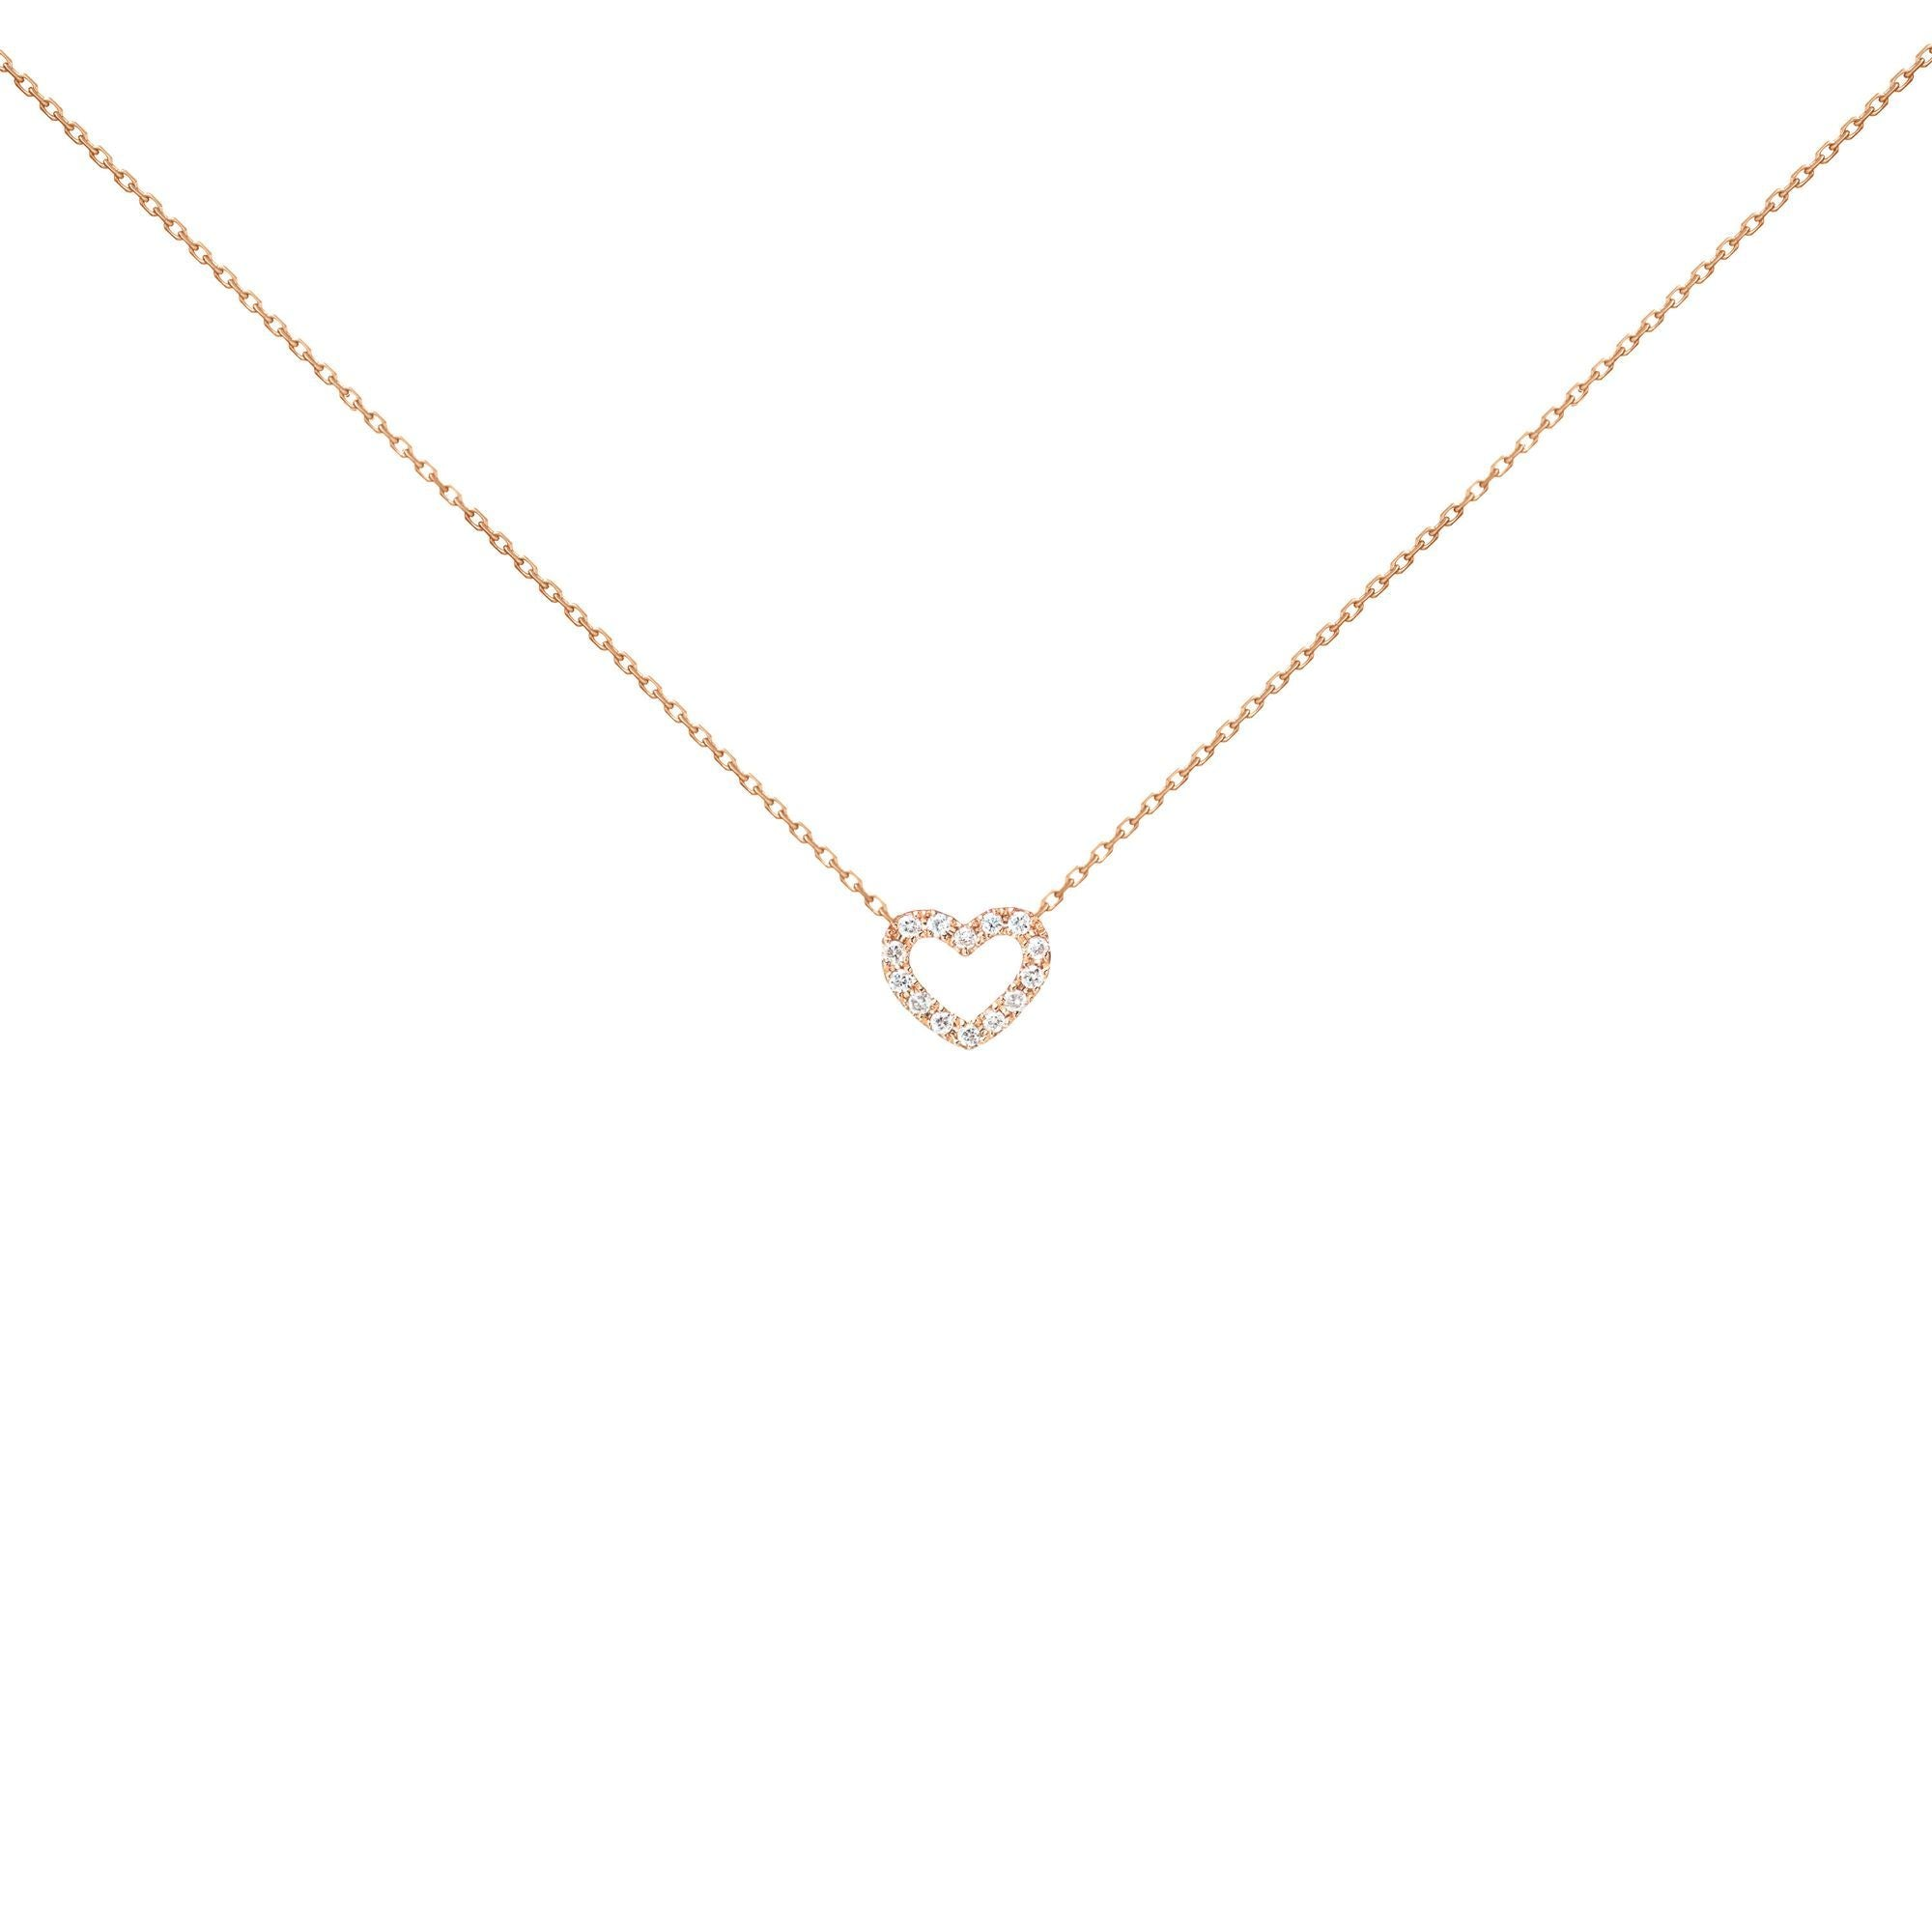 18k Pink Gold White Diamond Open Heart Necklace